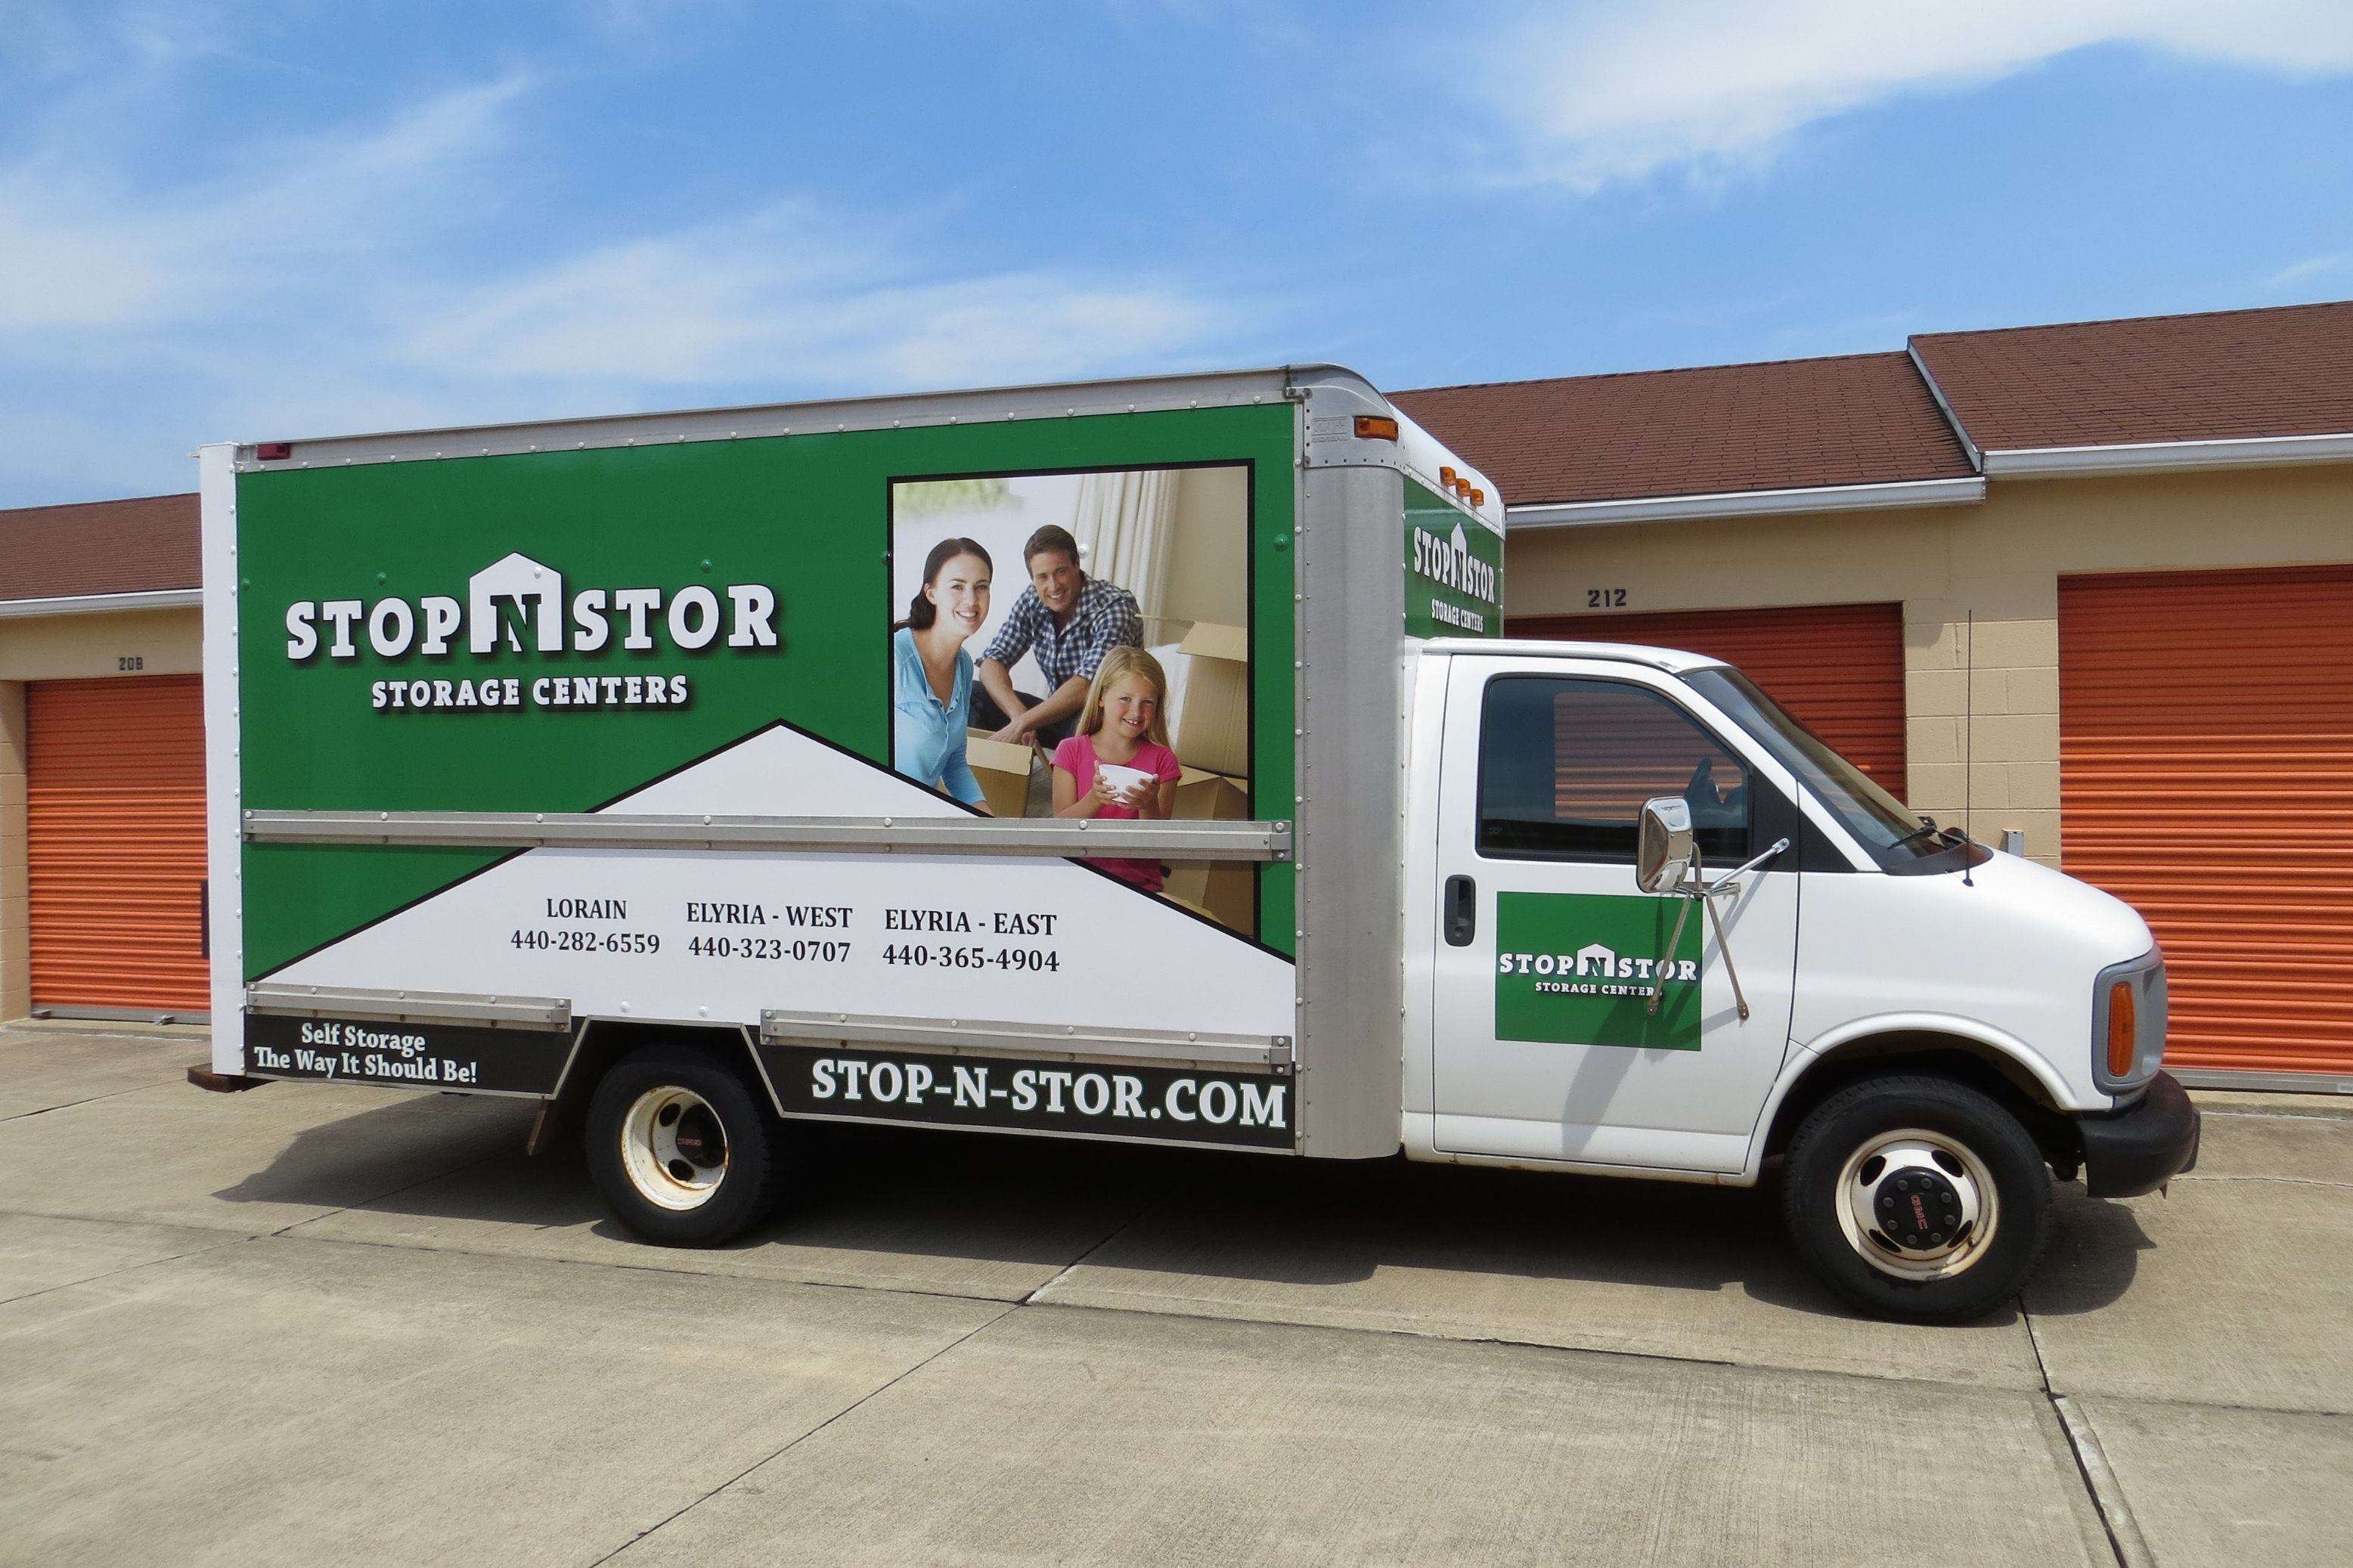 Stop N Stor Self Storage Centers 2230 W Park Dr, Lorain, OH 44053   YP.com